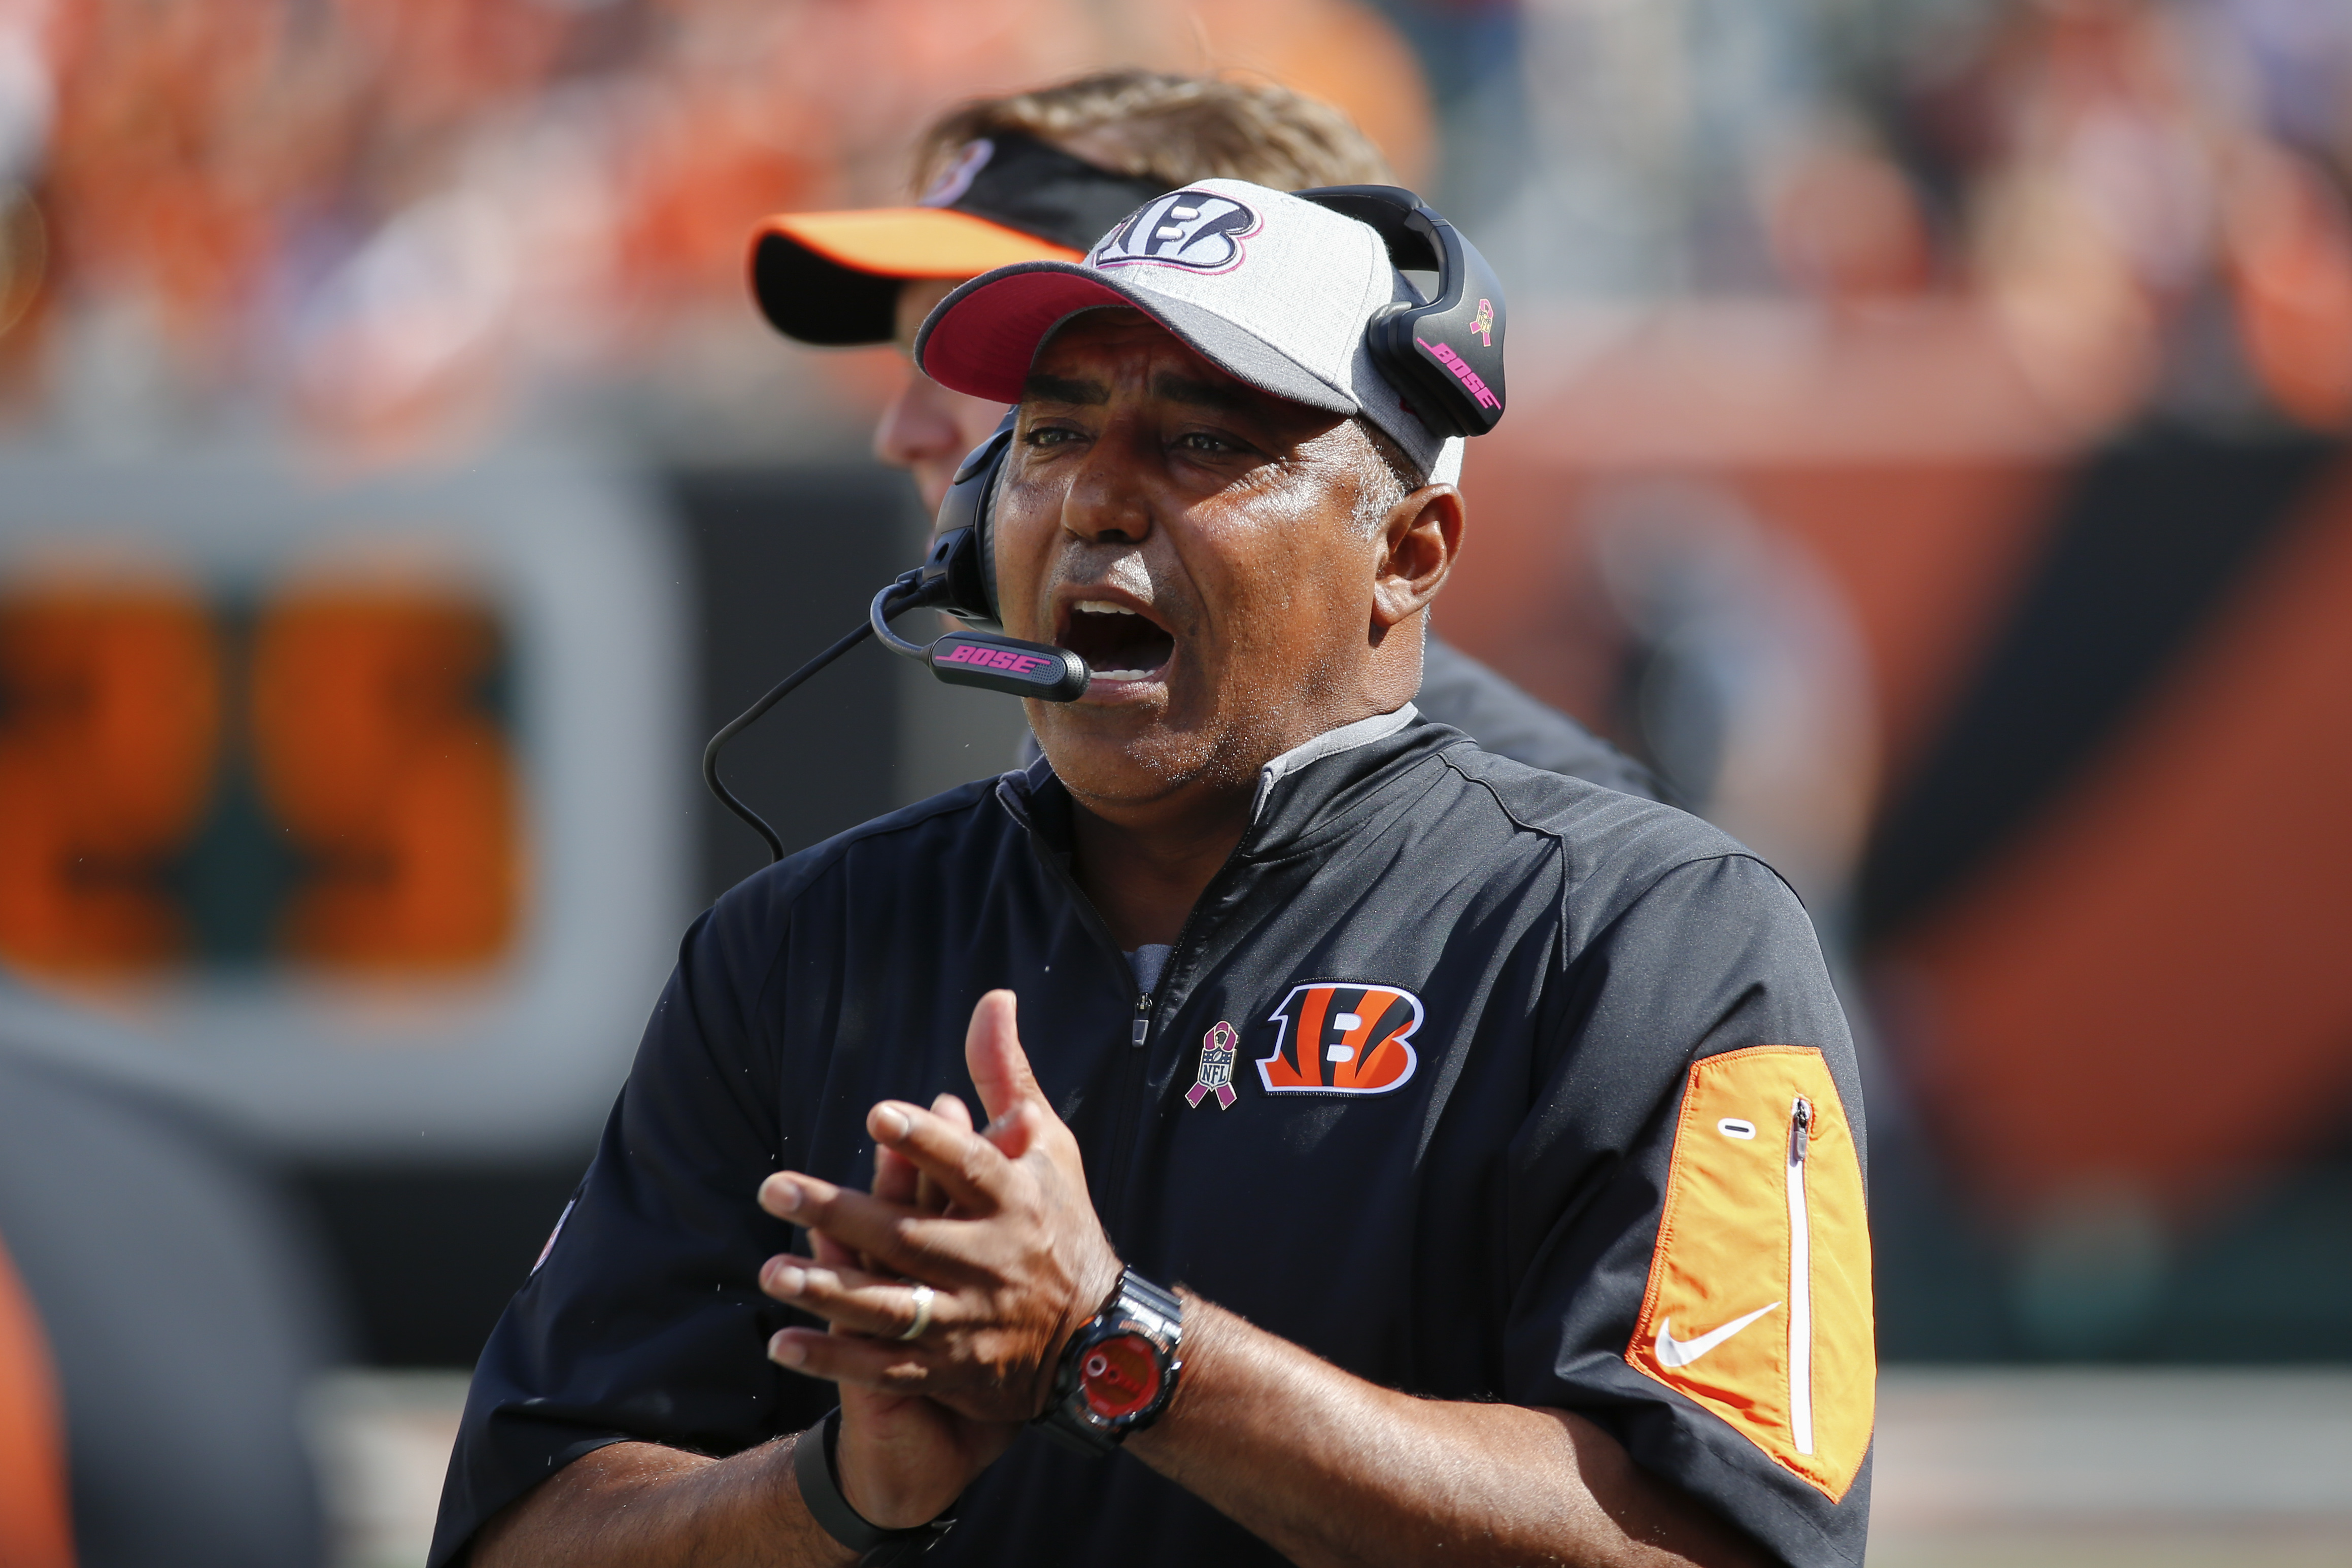 Cincinnati Bengals head coach Marvin Lewis works the sidelines in the second half of an NFL football game against the Kansas City Chiefs, Sunday, Oct. 4, 2015, in Cincinnati. (AP Photo/Paul Sancya)